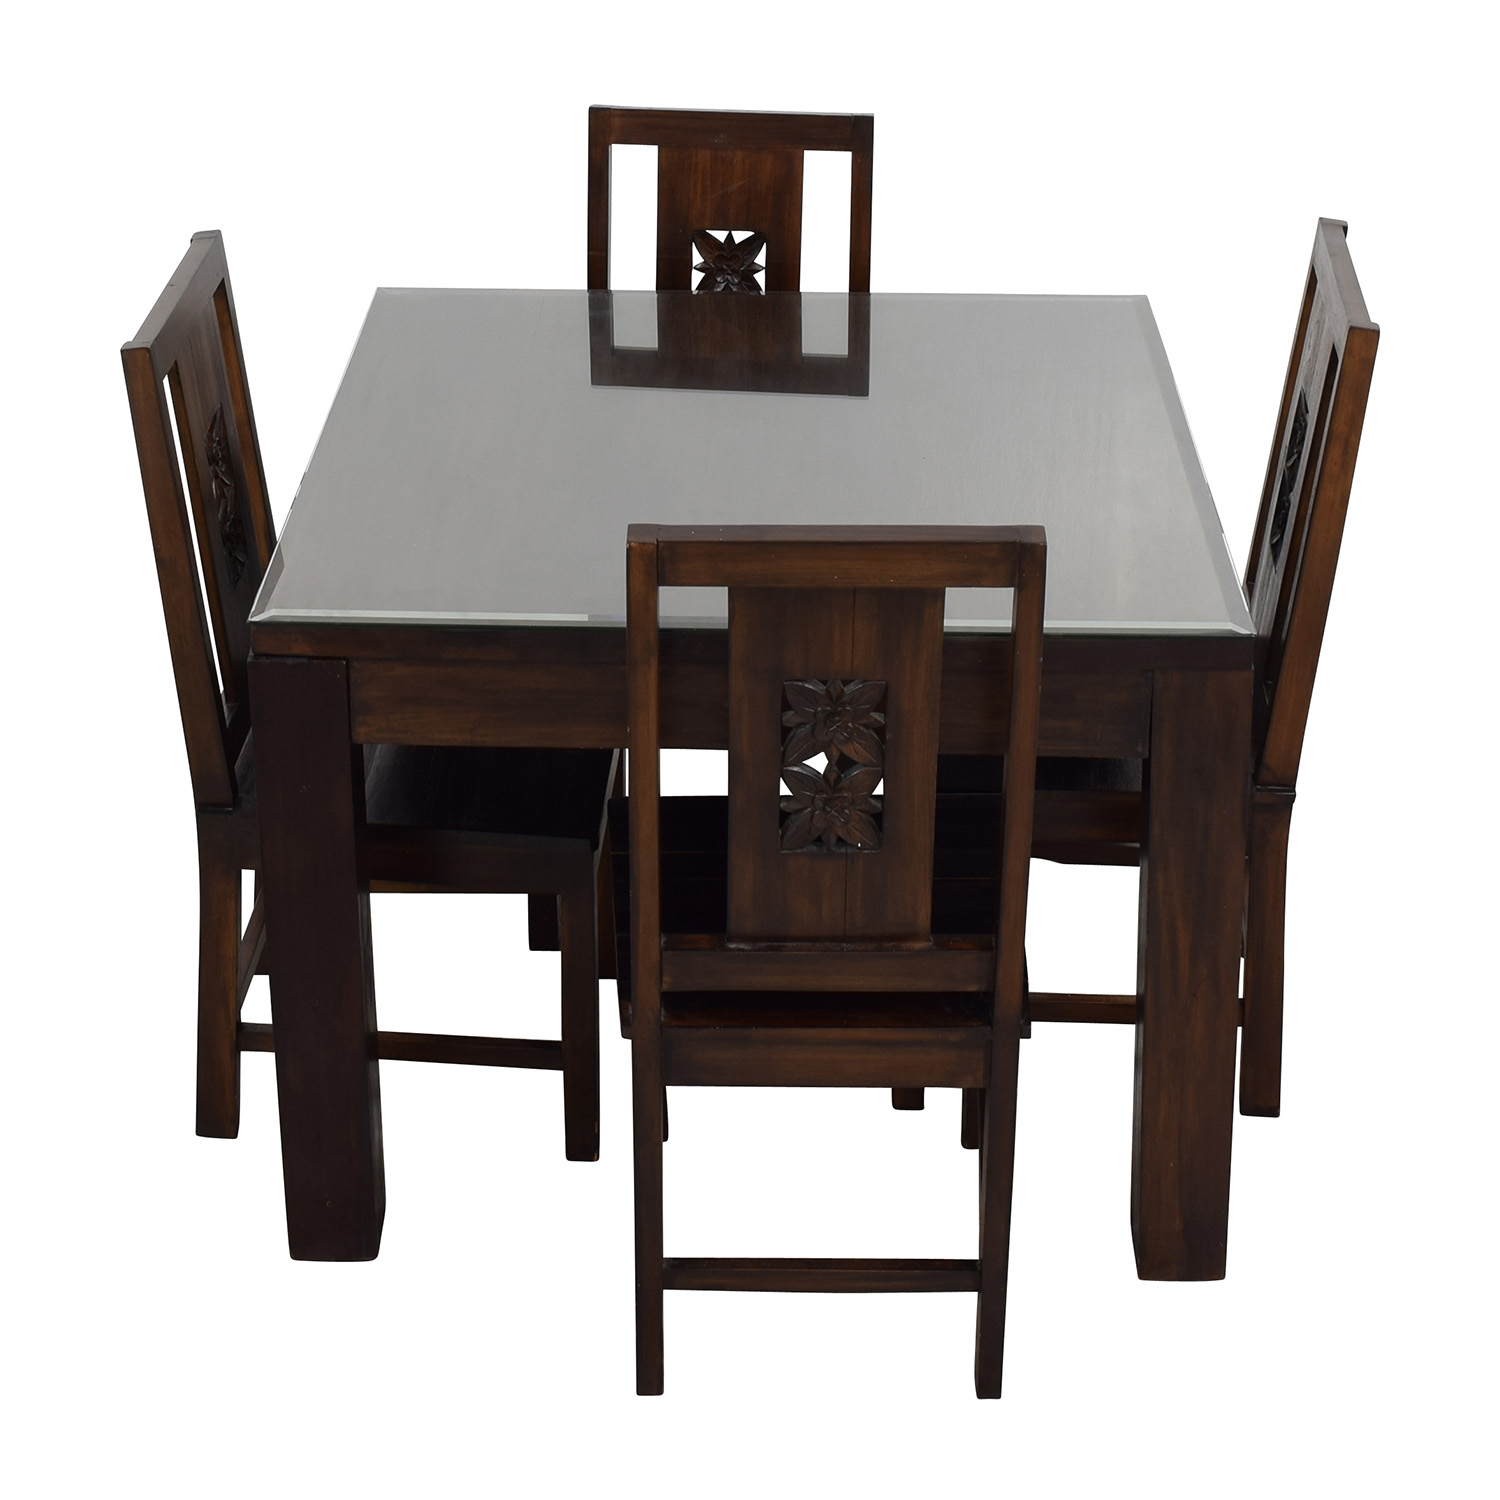 teak dining room table and chairs. Balinese Teak Dining Table Set Room And Chairs